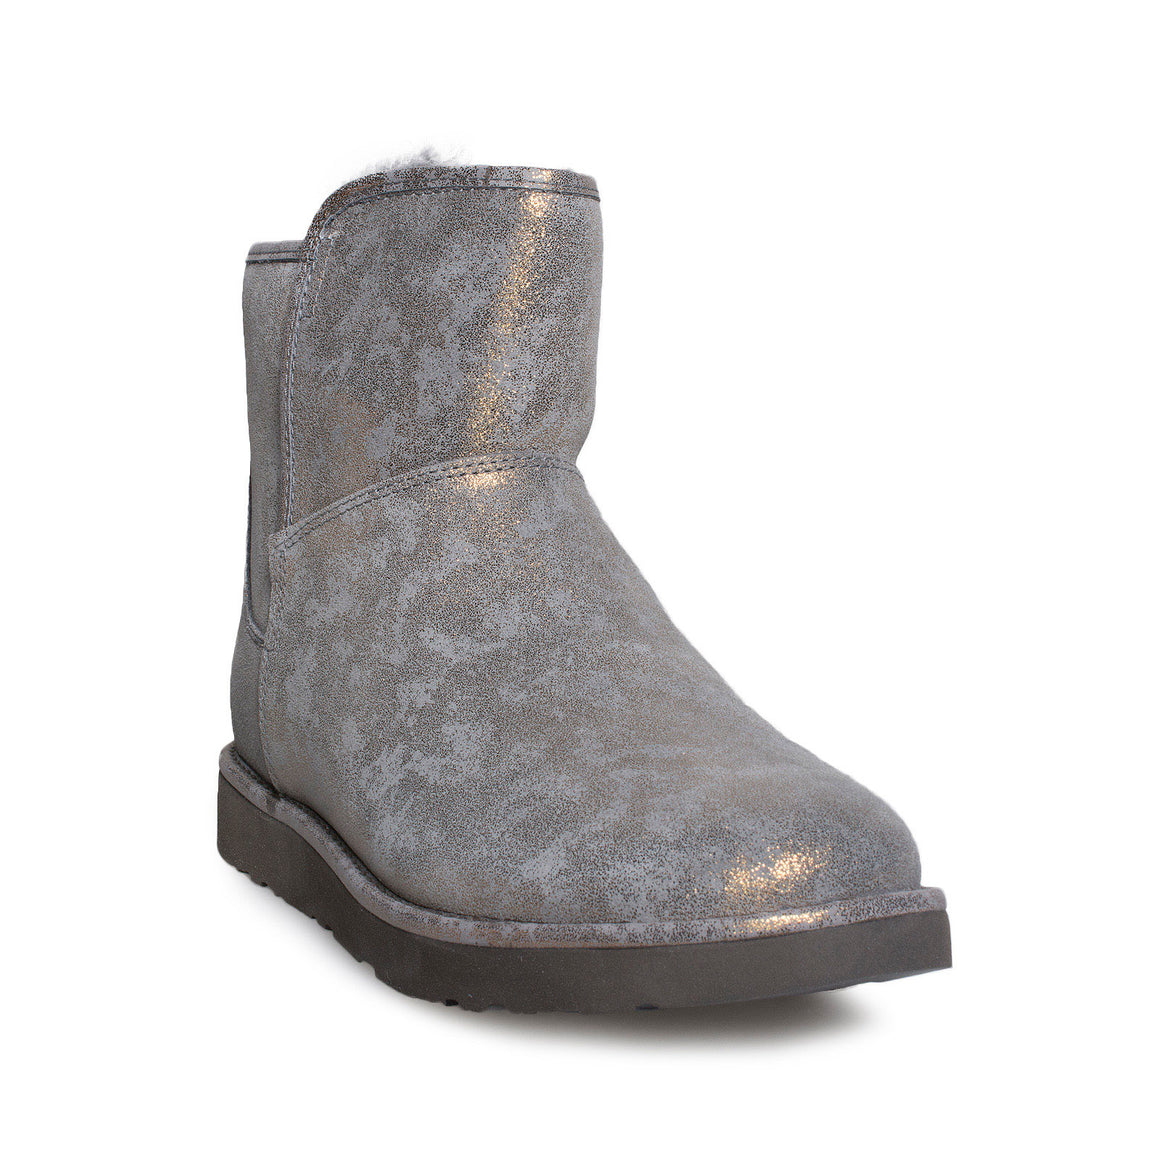 UGG Abree Mini Stardust Gunmetal Boots - Women's